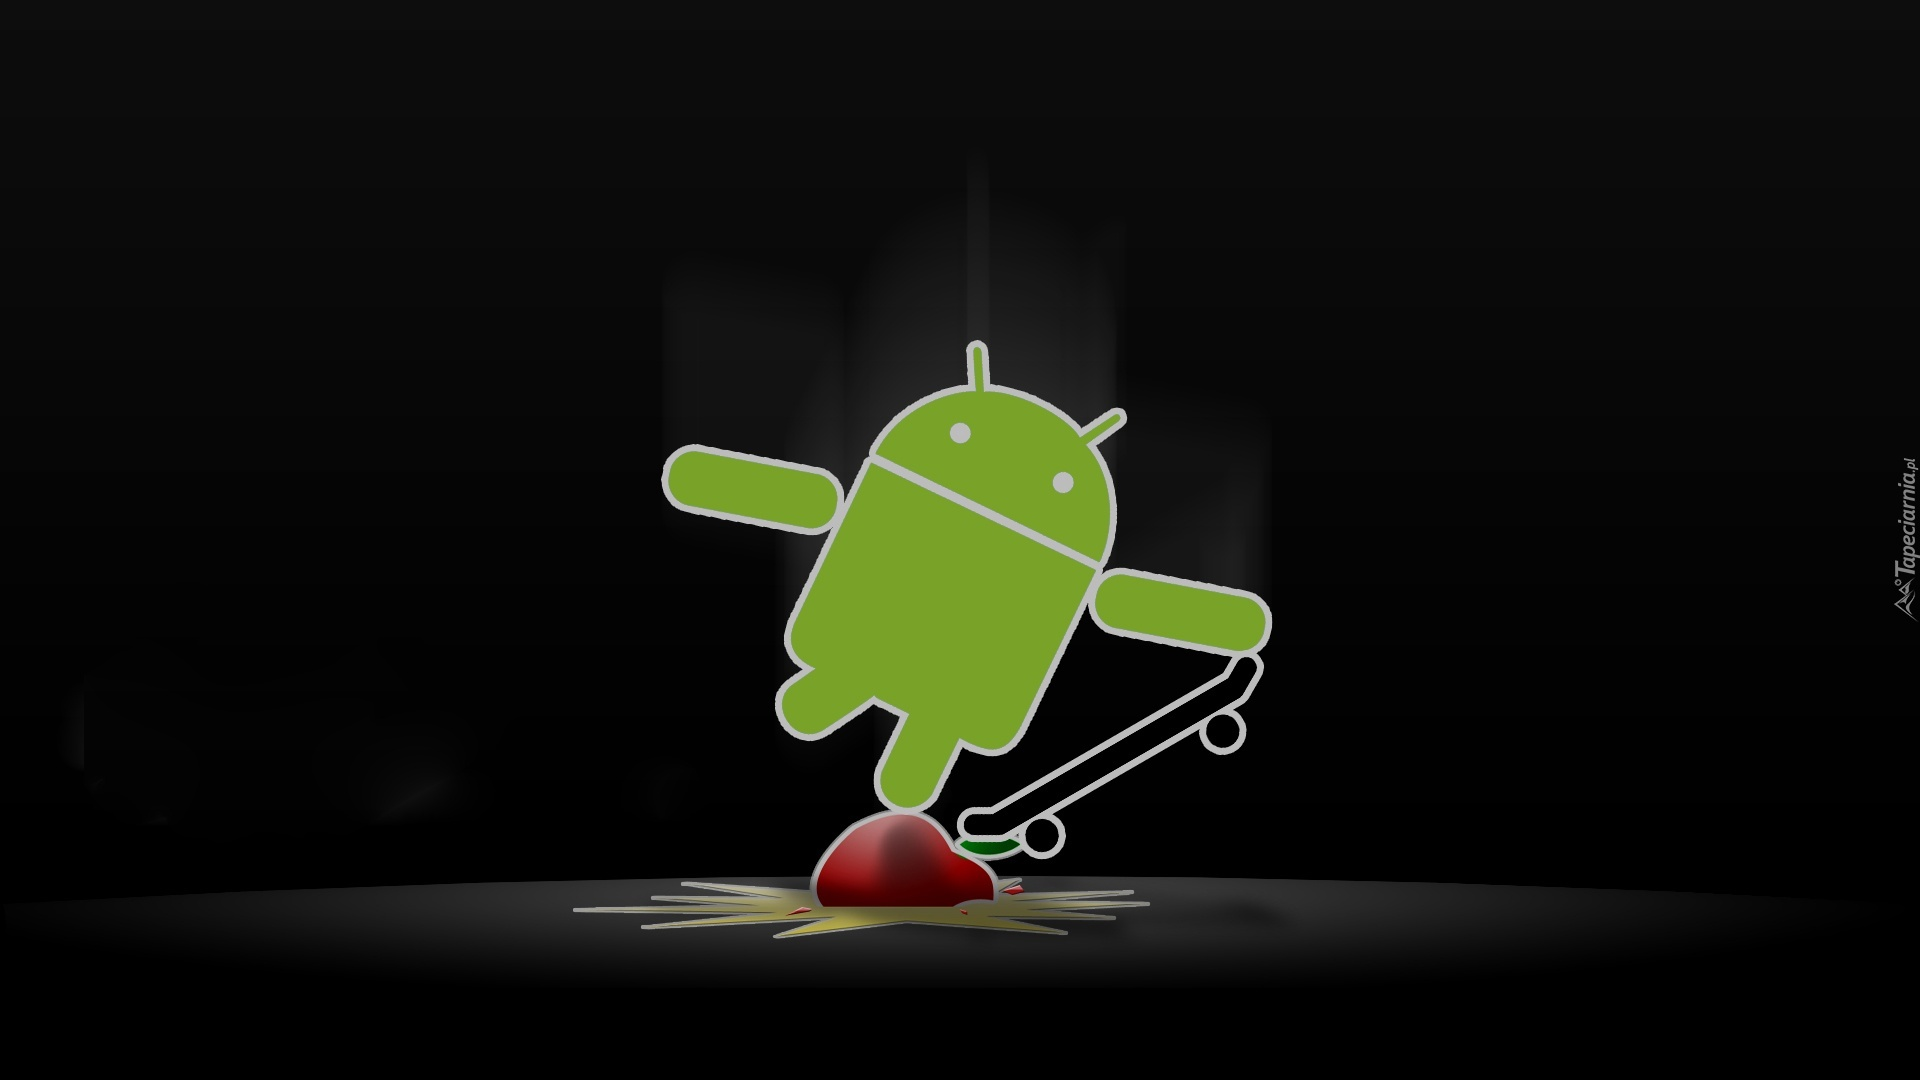 Android, Deskorolka, Apple